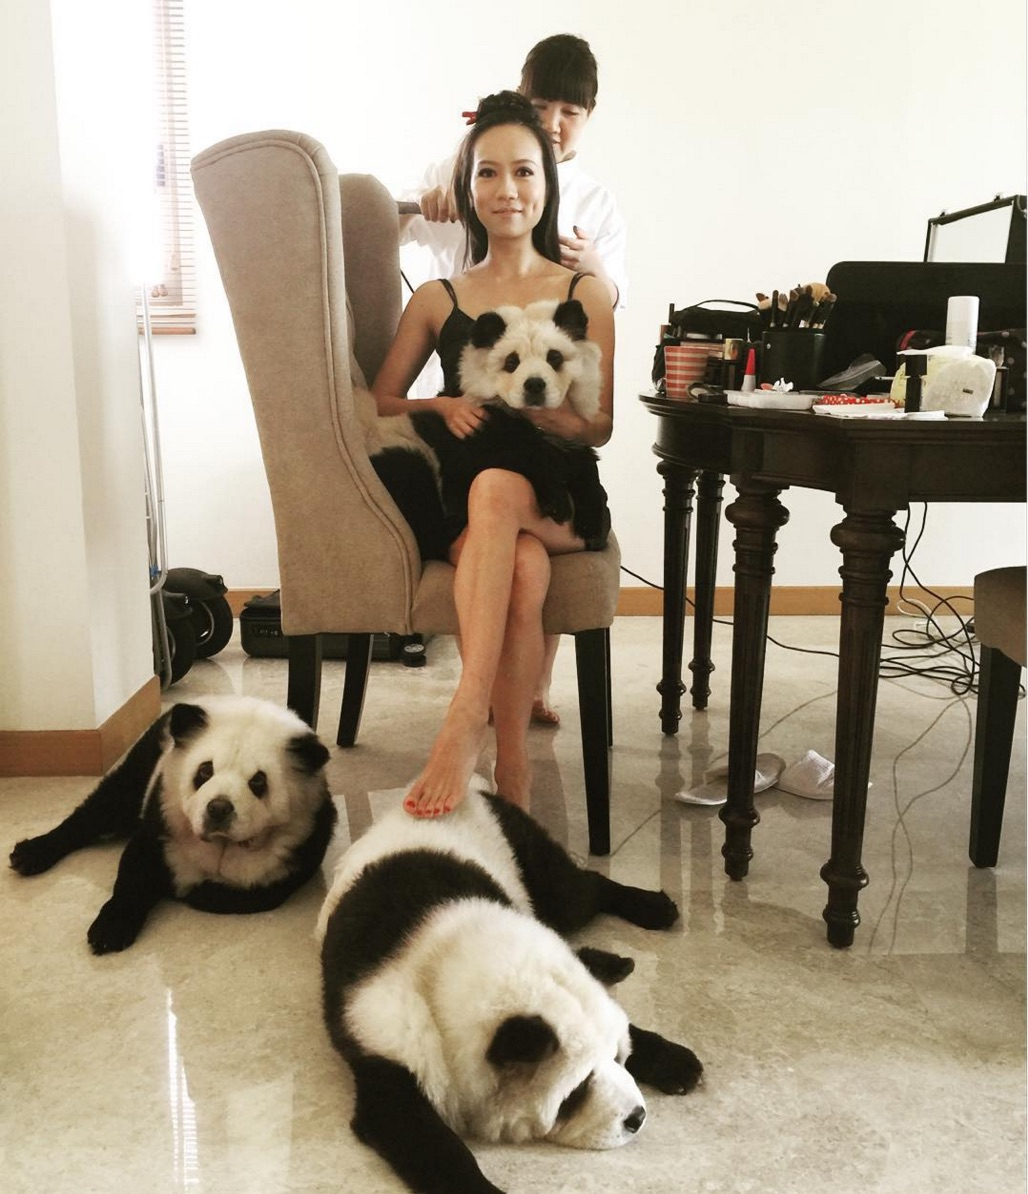 What happened when one woman dyed her dogs to look like panda bears